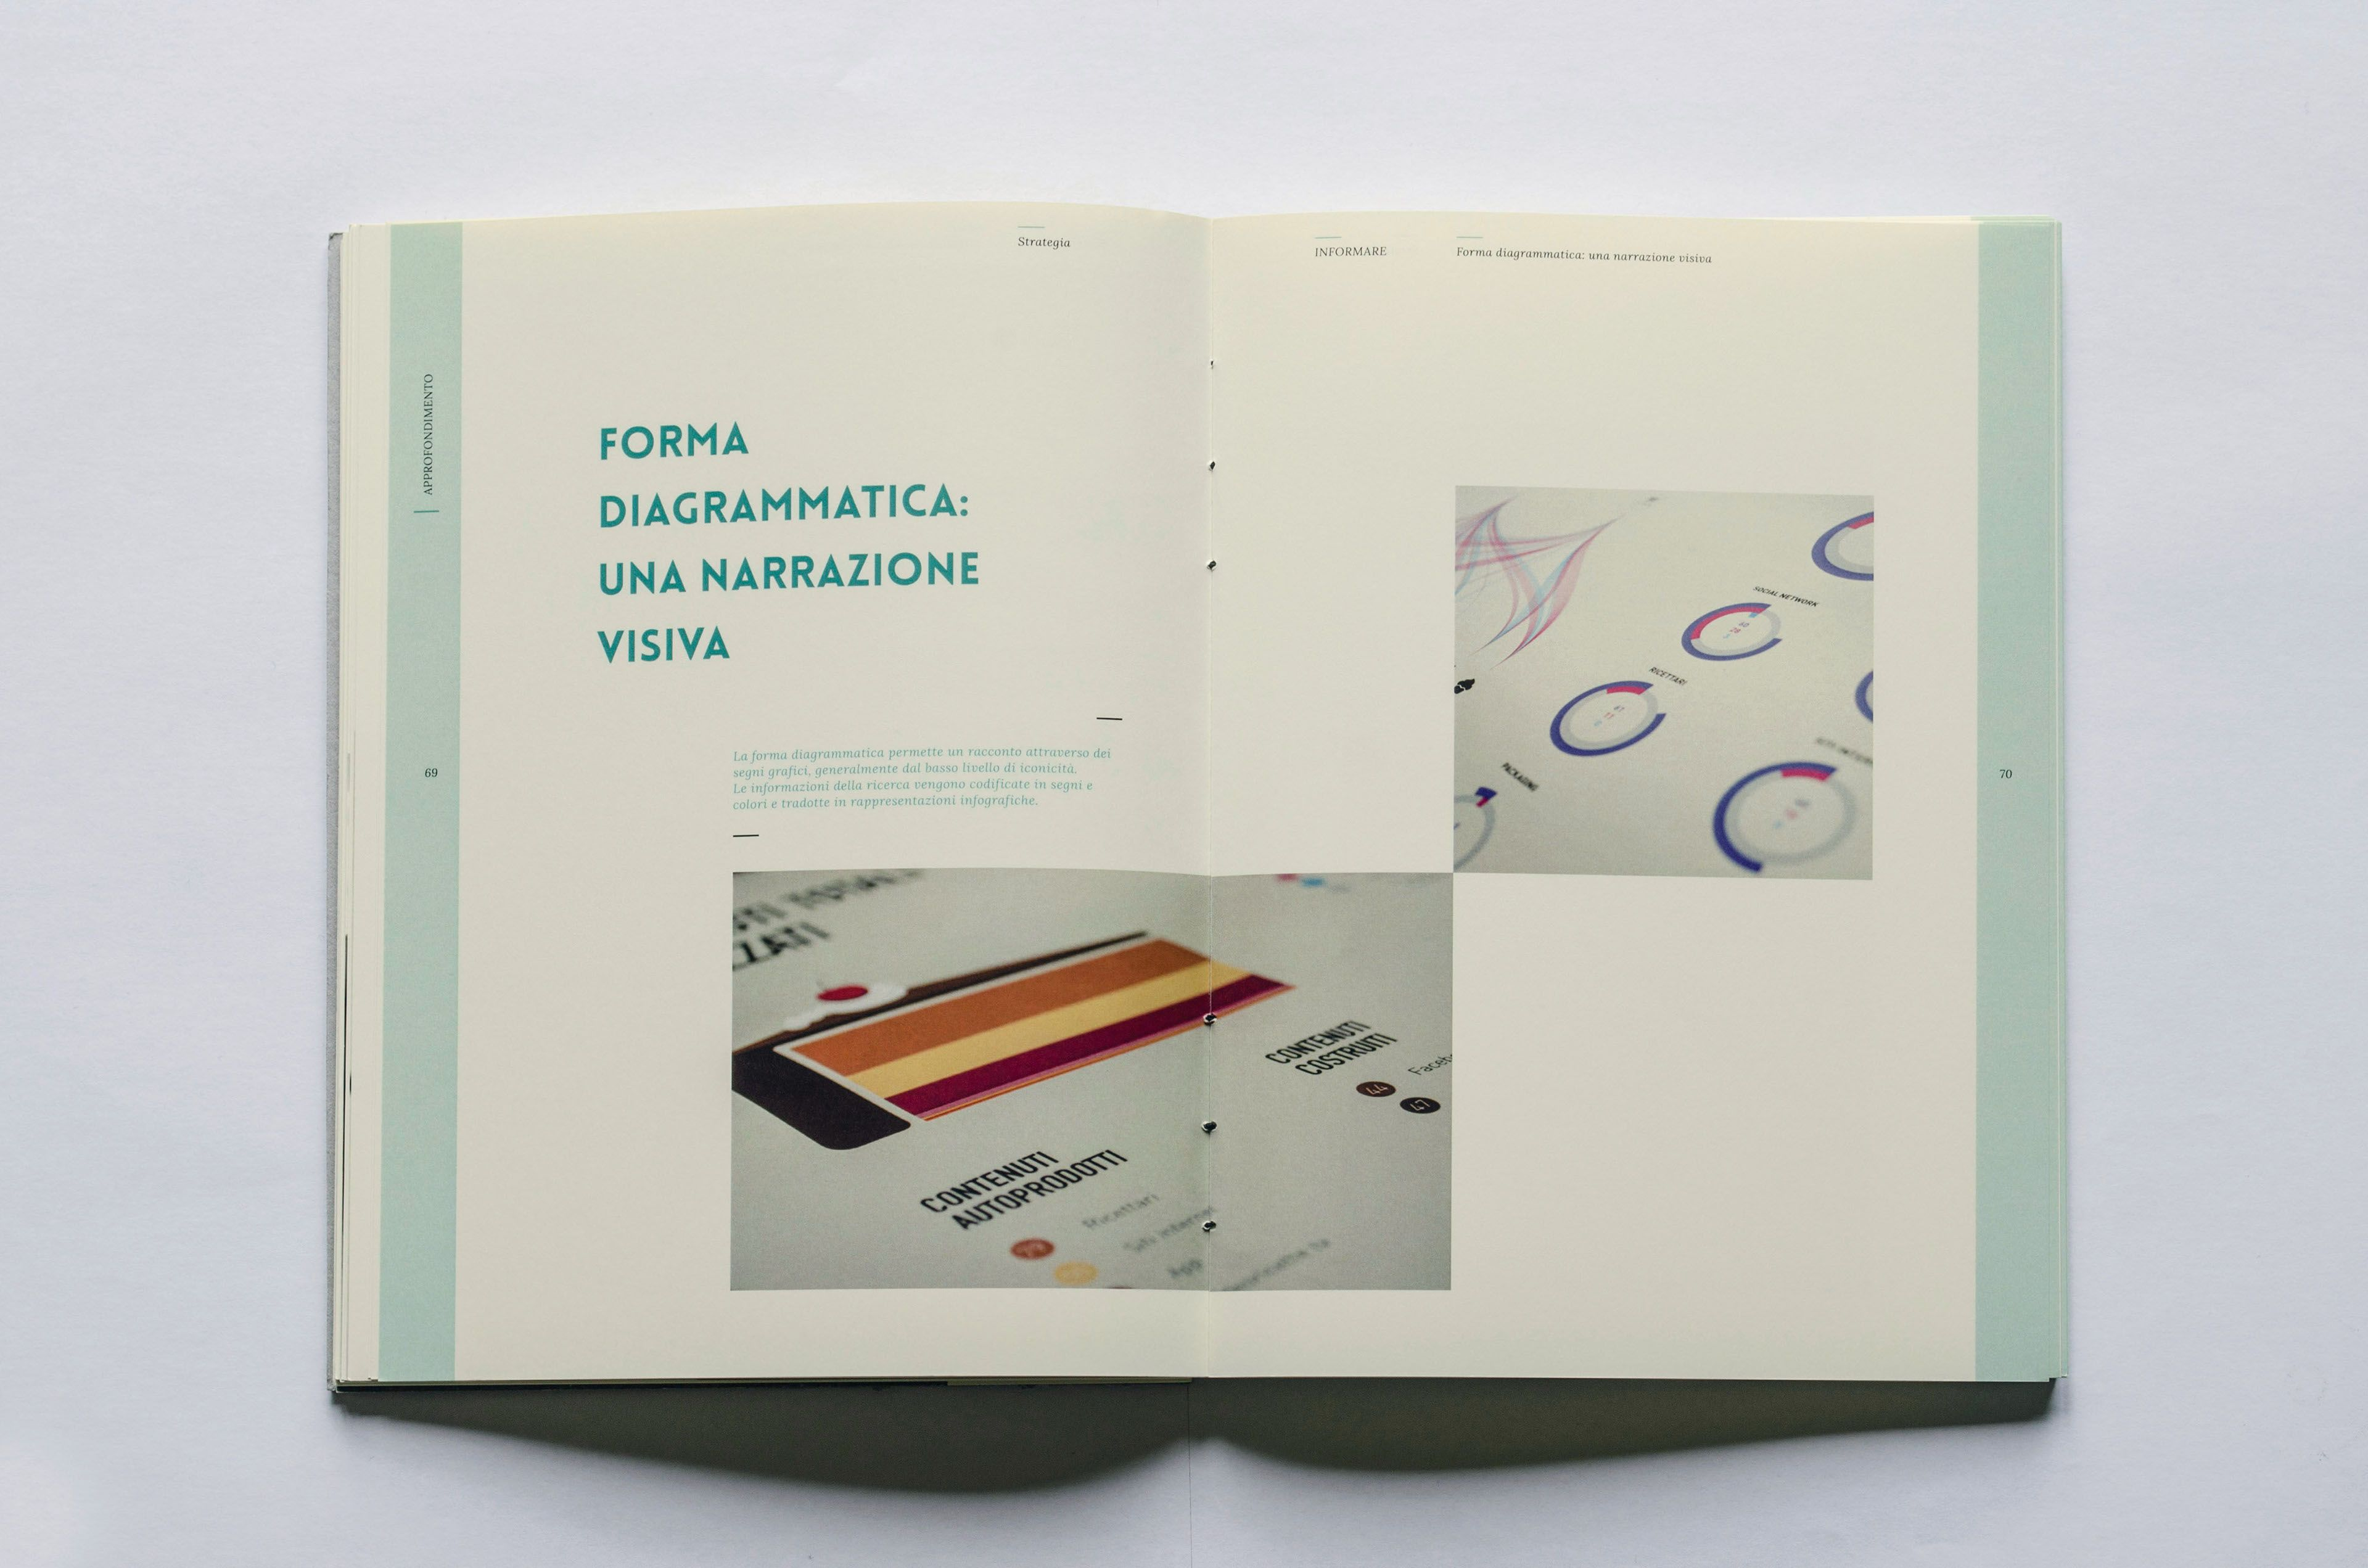 Editorial Design Project Of My Final Thesis For The Bachelor 39 S Degree In Communication Design At Politecnico Di Milano Bachelors Degree Thesis Bachelor